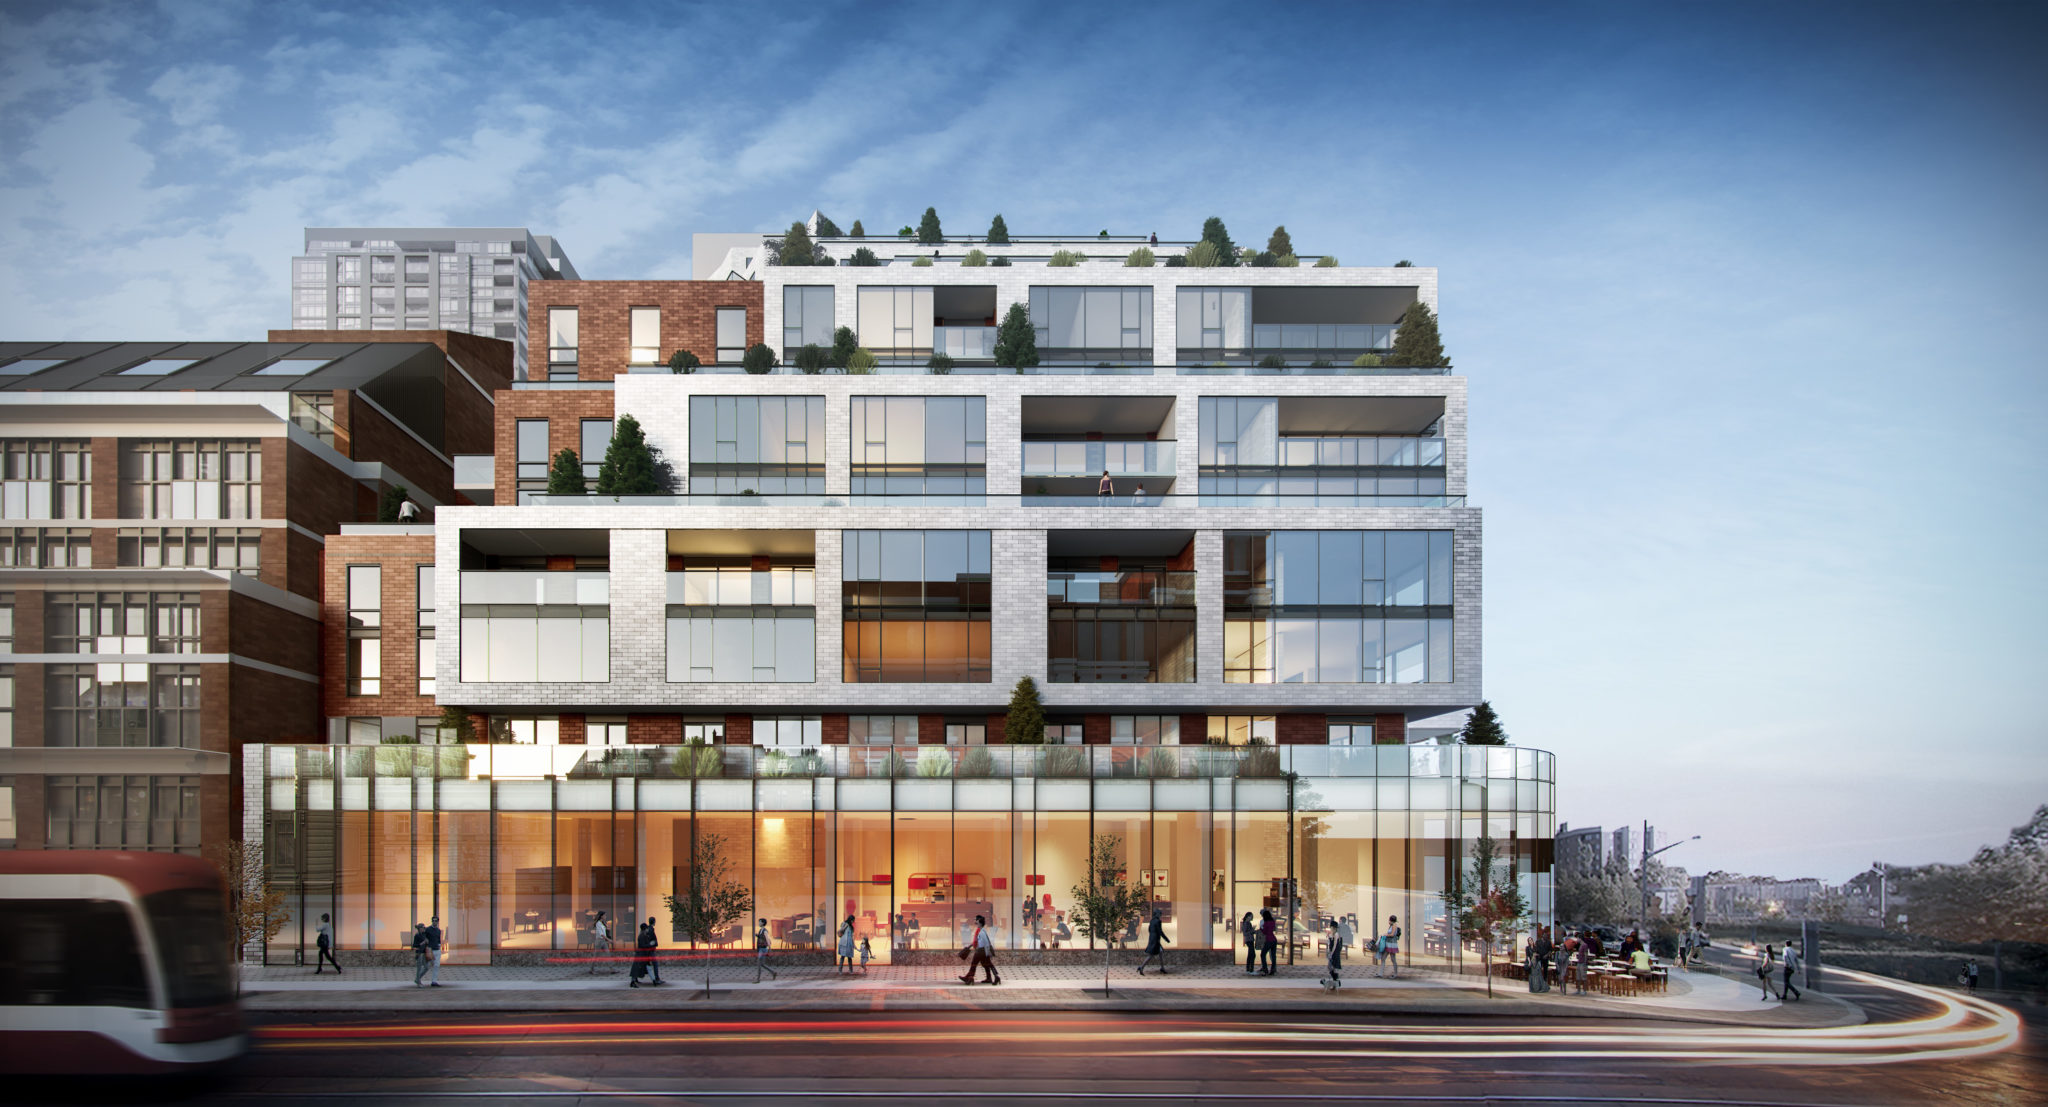 An artistic rendering of 1181 Queen St. West